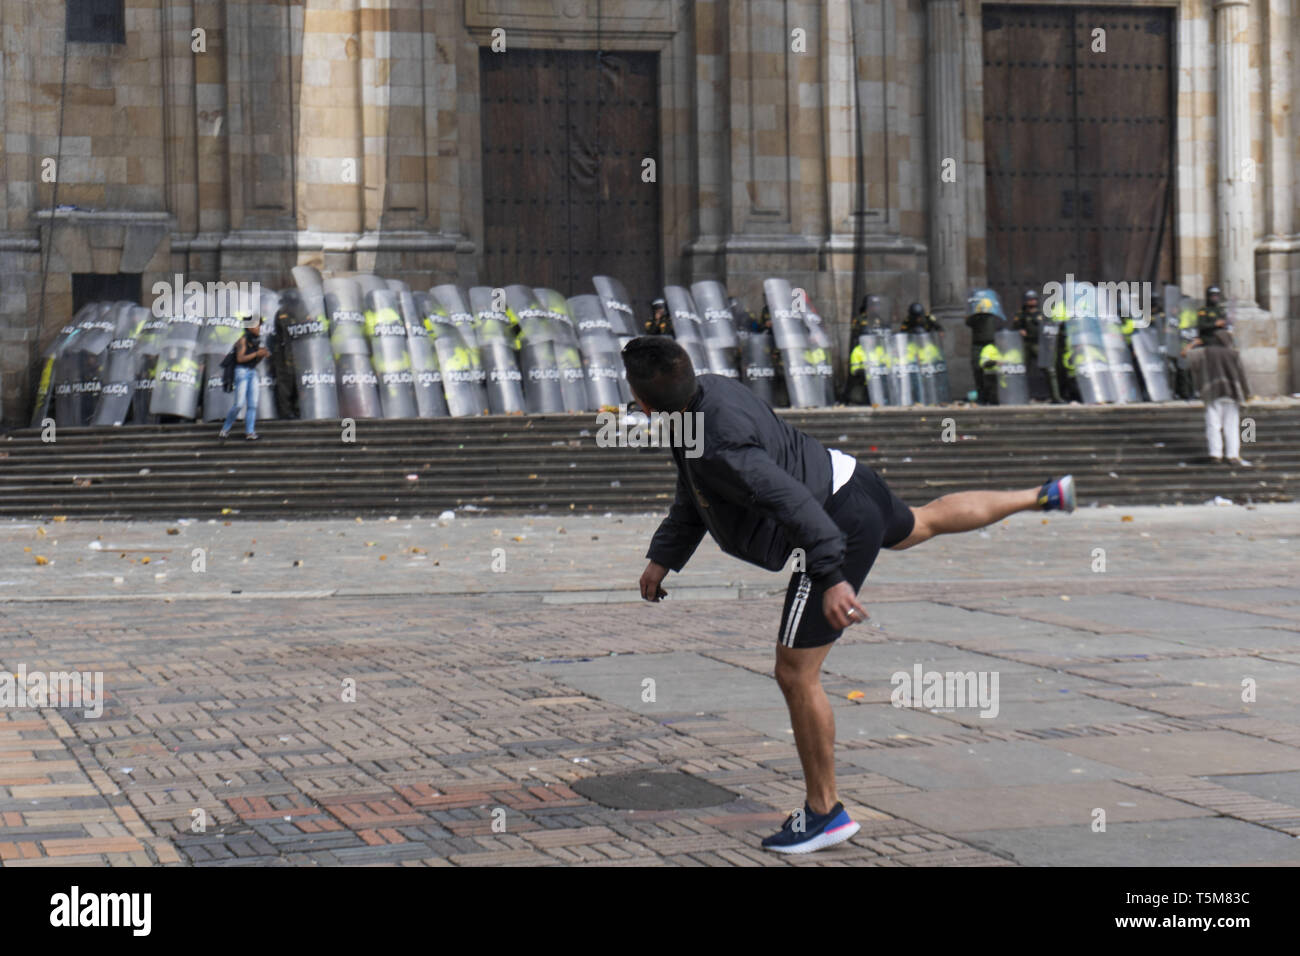 Bogota, Colombia. 25th Apr, 2019. April 25, 2019 - A hooded man throwing stones at the police in the march of the national strike in the city of Bogotà Credit: Daniel Garzon Herazo/ZUMA Wire/Alamy Live News Credit: ZUMA Press, Inc./Alamy Live News Stock Photo